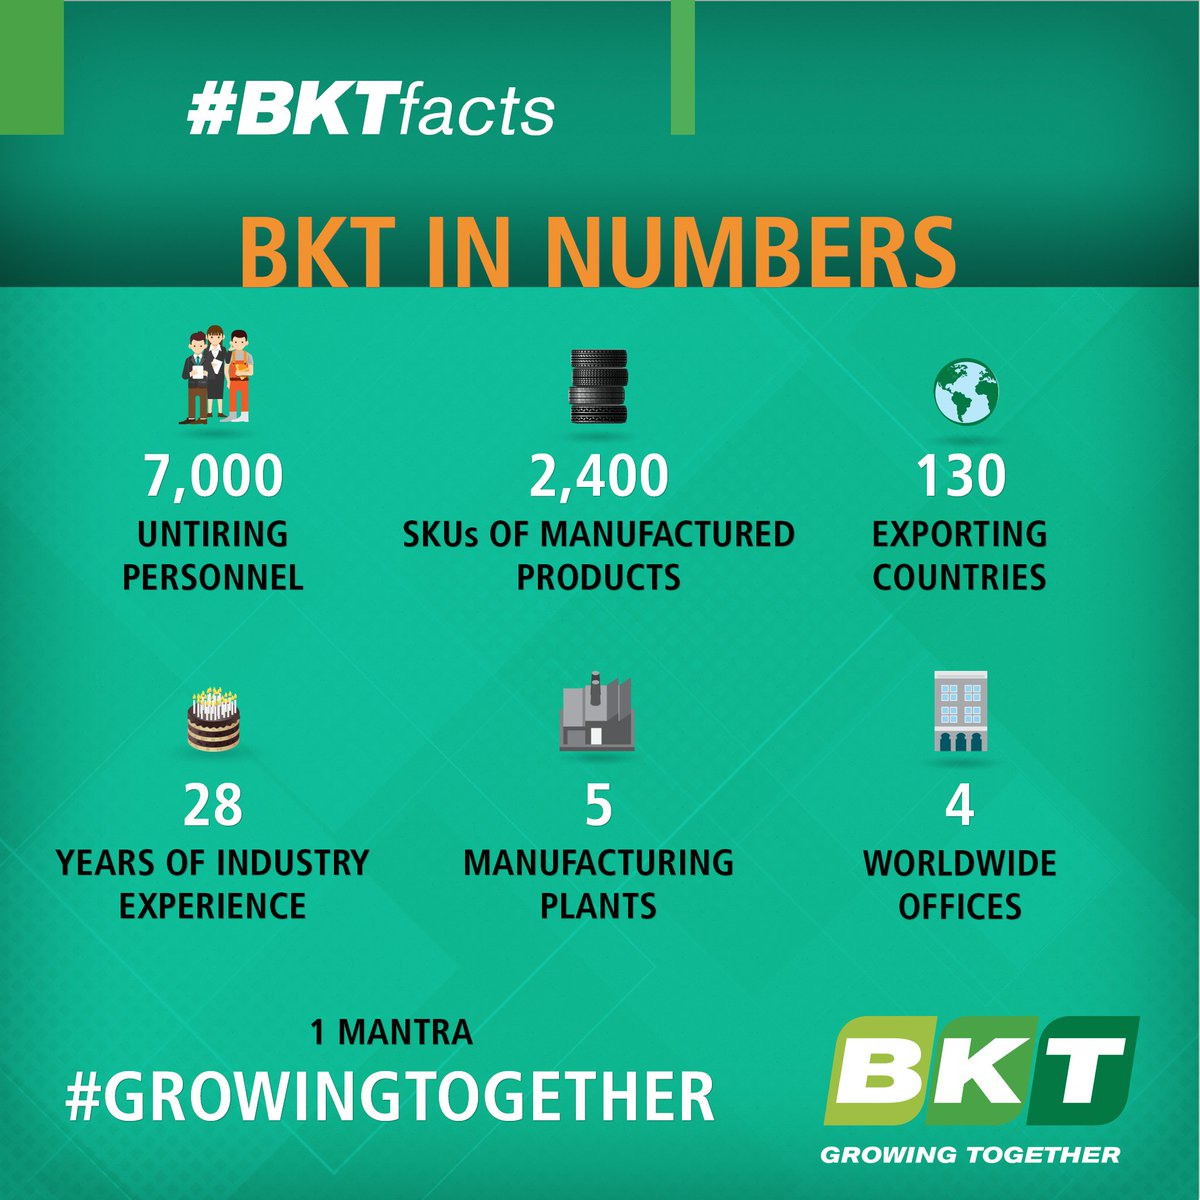 #BKTfacts Where are we today? Let's talk about numbers! Did you know that… https://t.co/wcxJBPWxY4